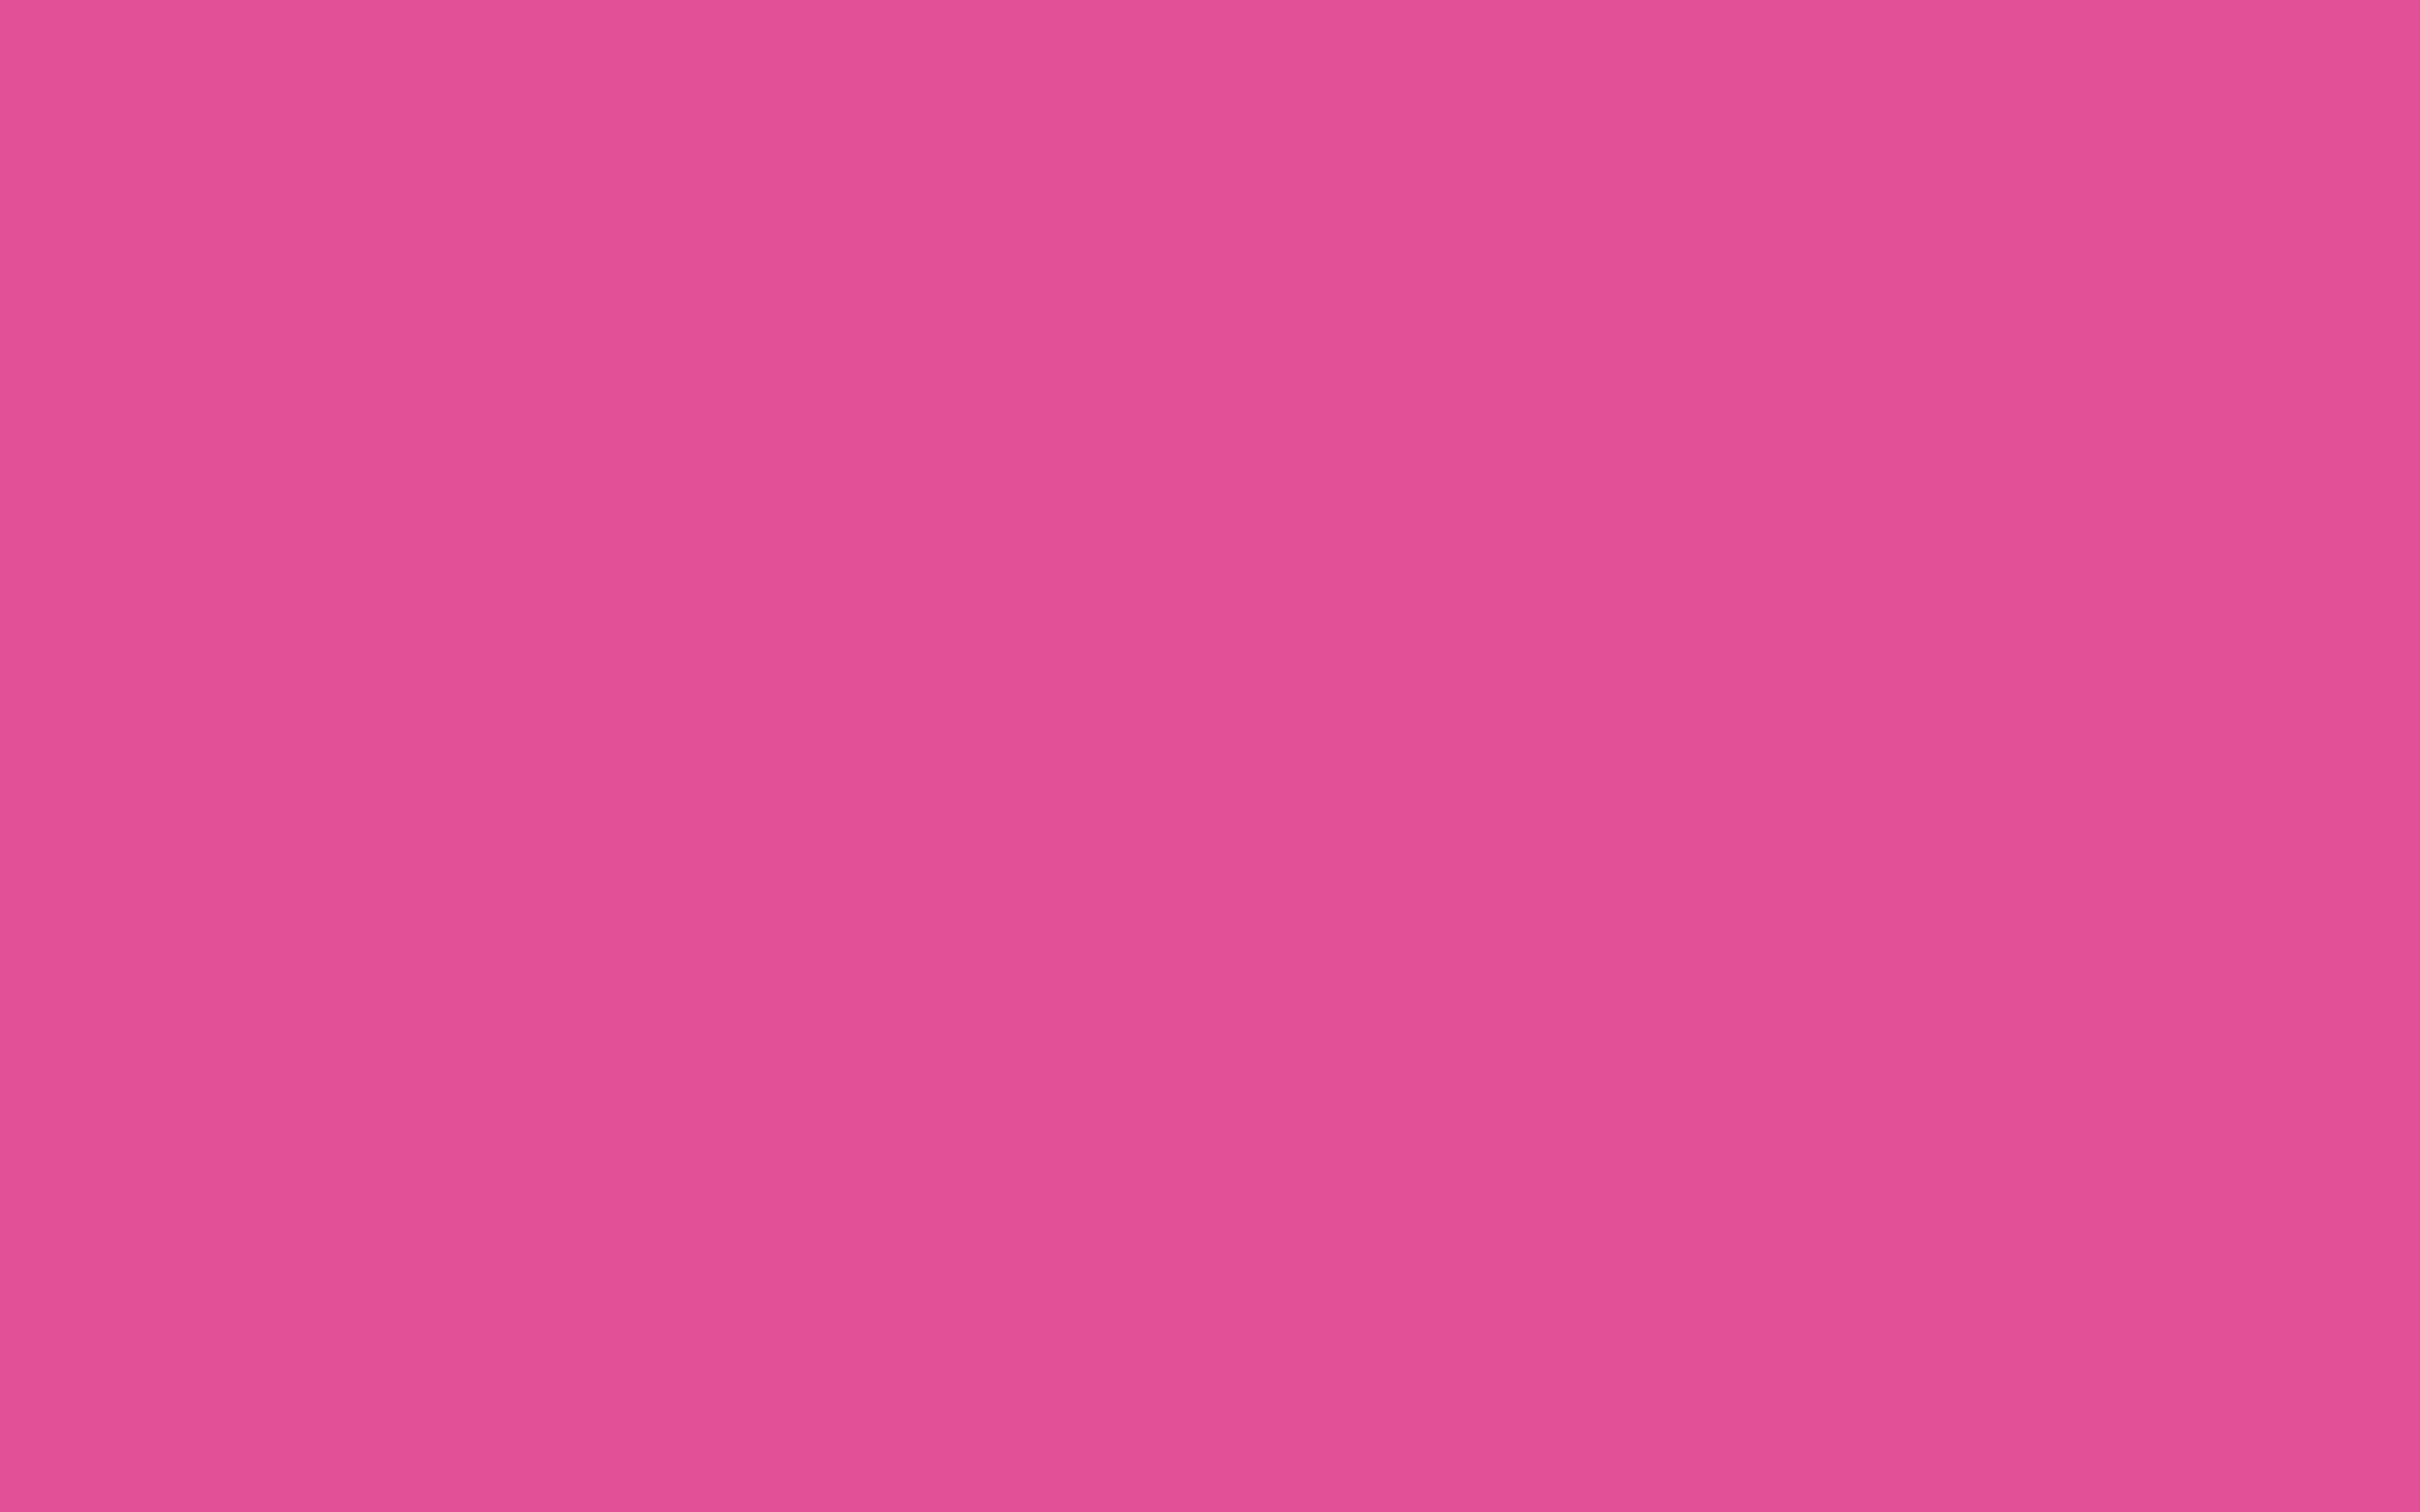 2560x1600 Raspberry Pink Solid Color Background